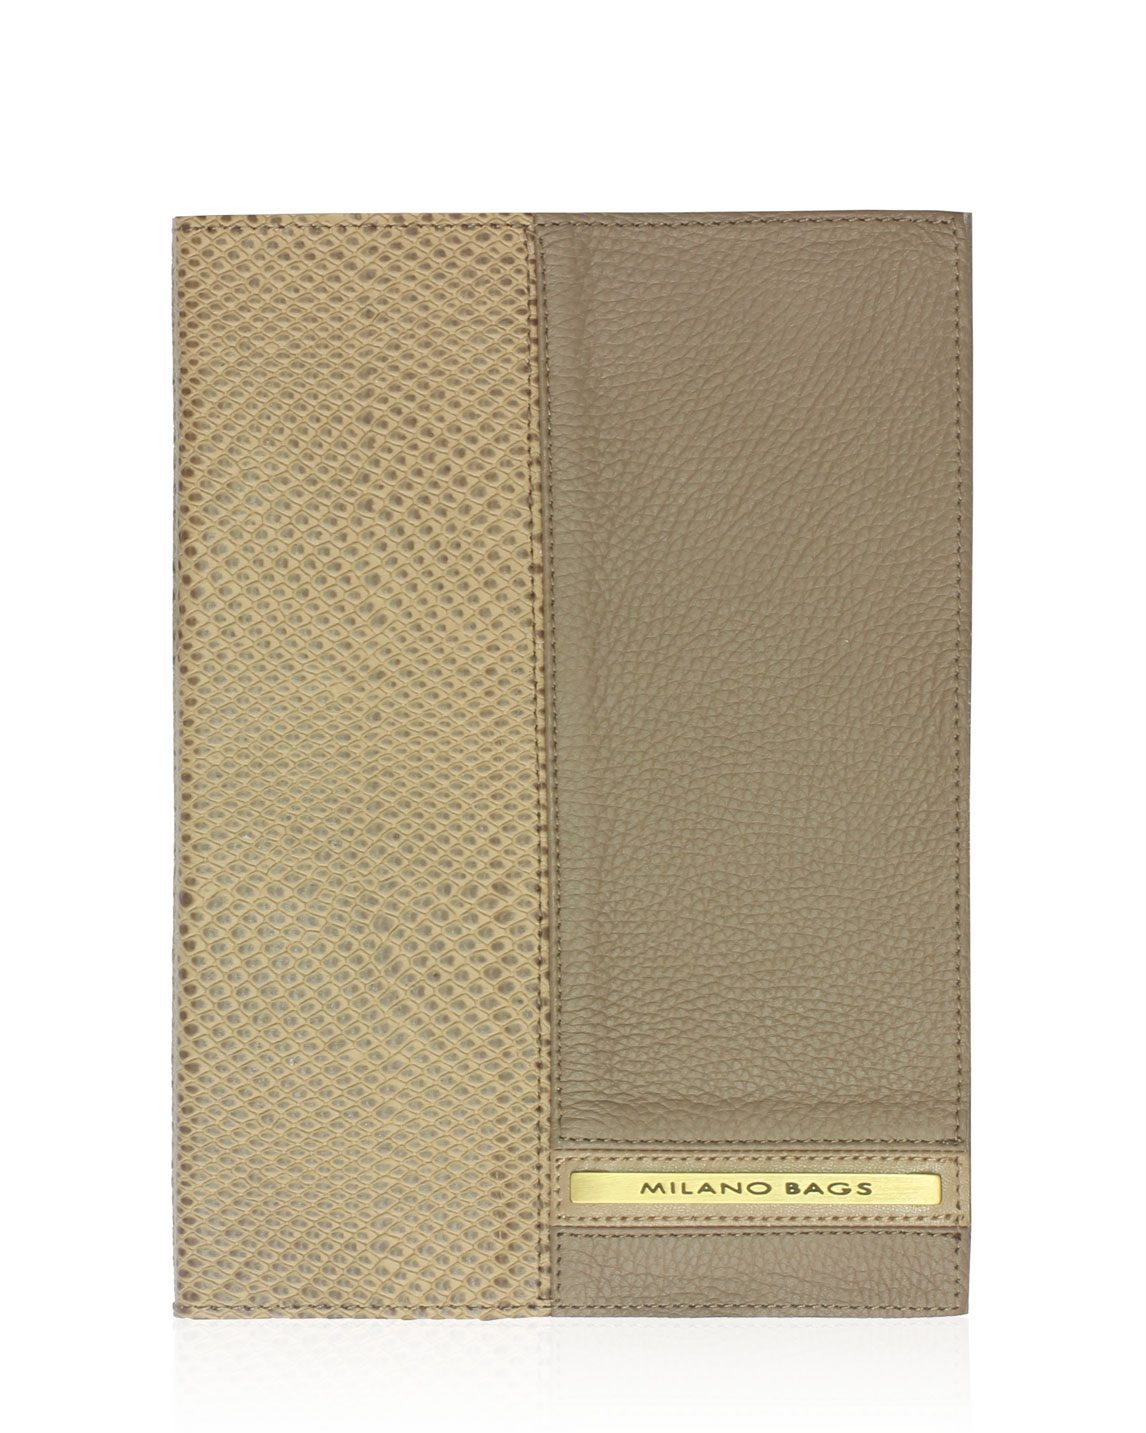 Agenda AG-110 Color Beige